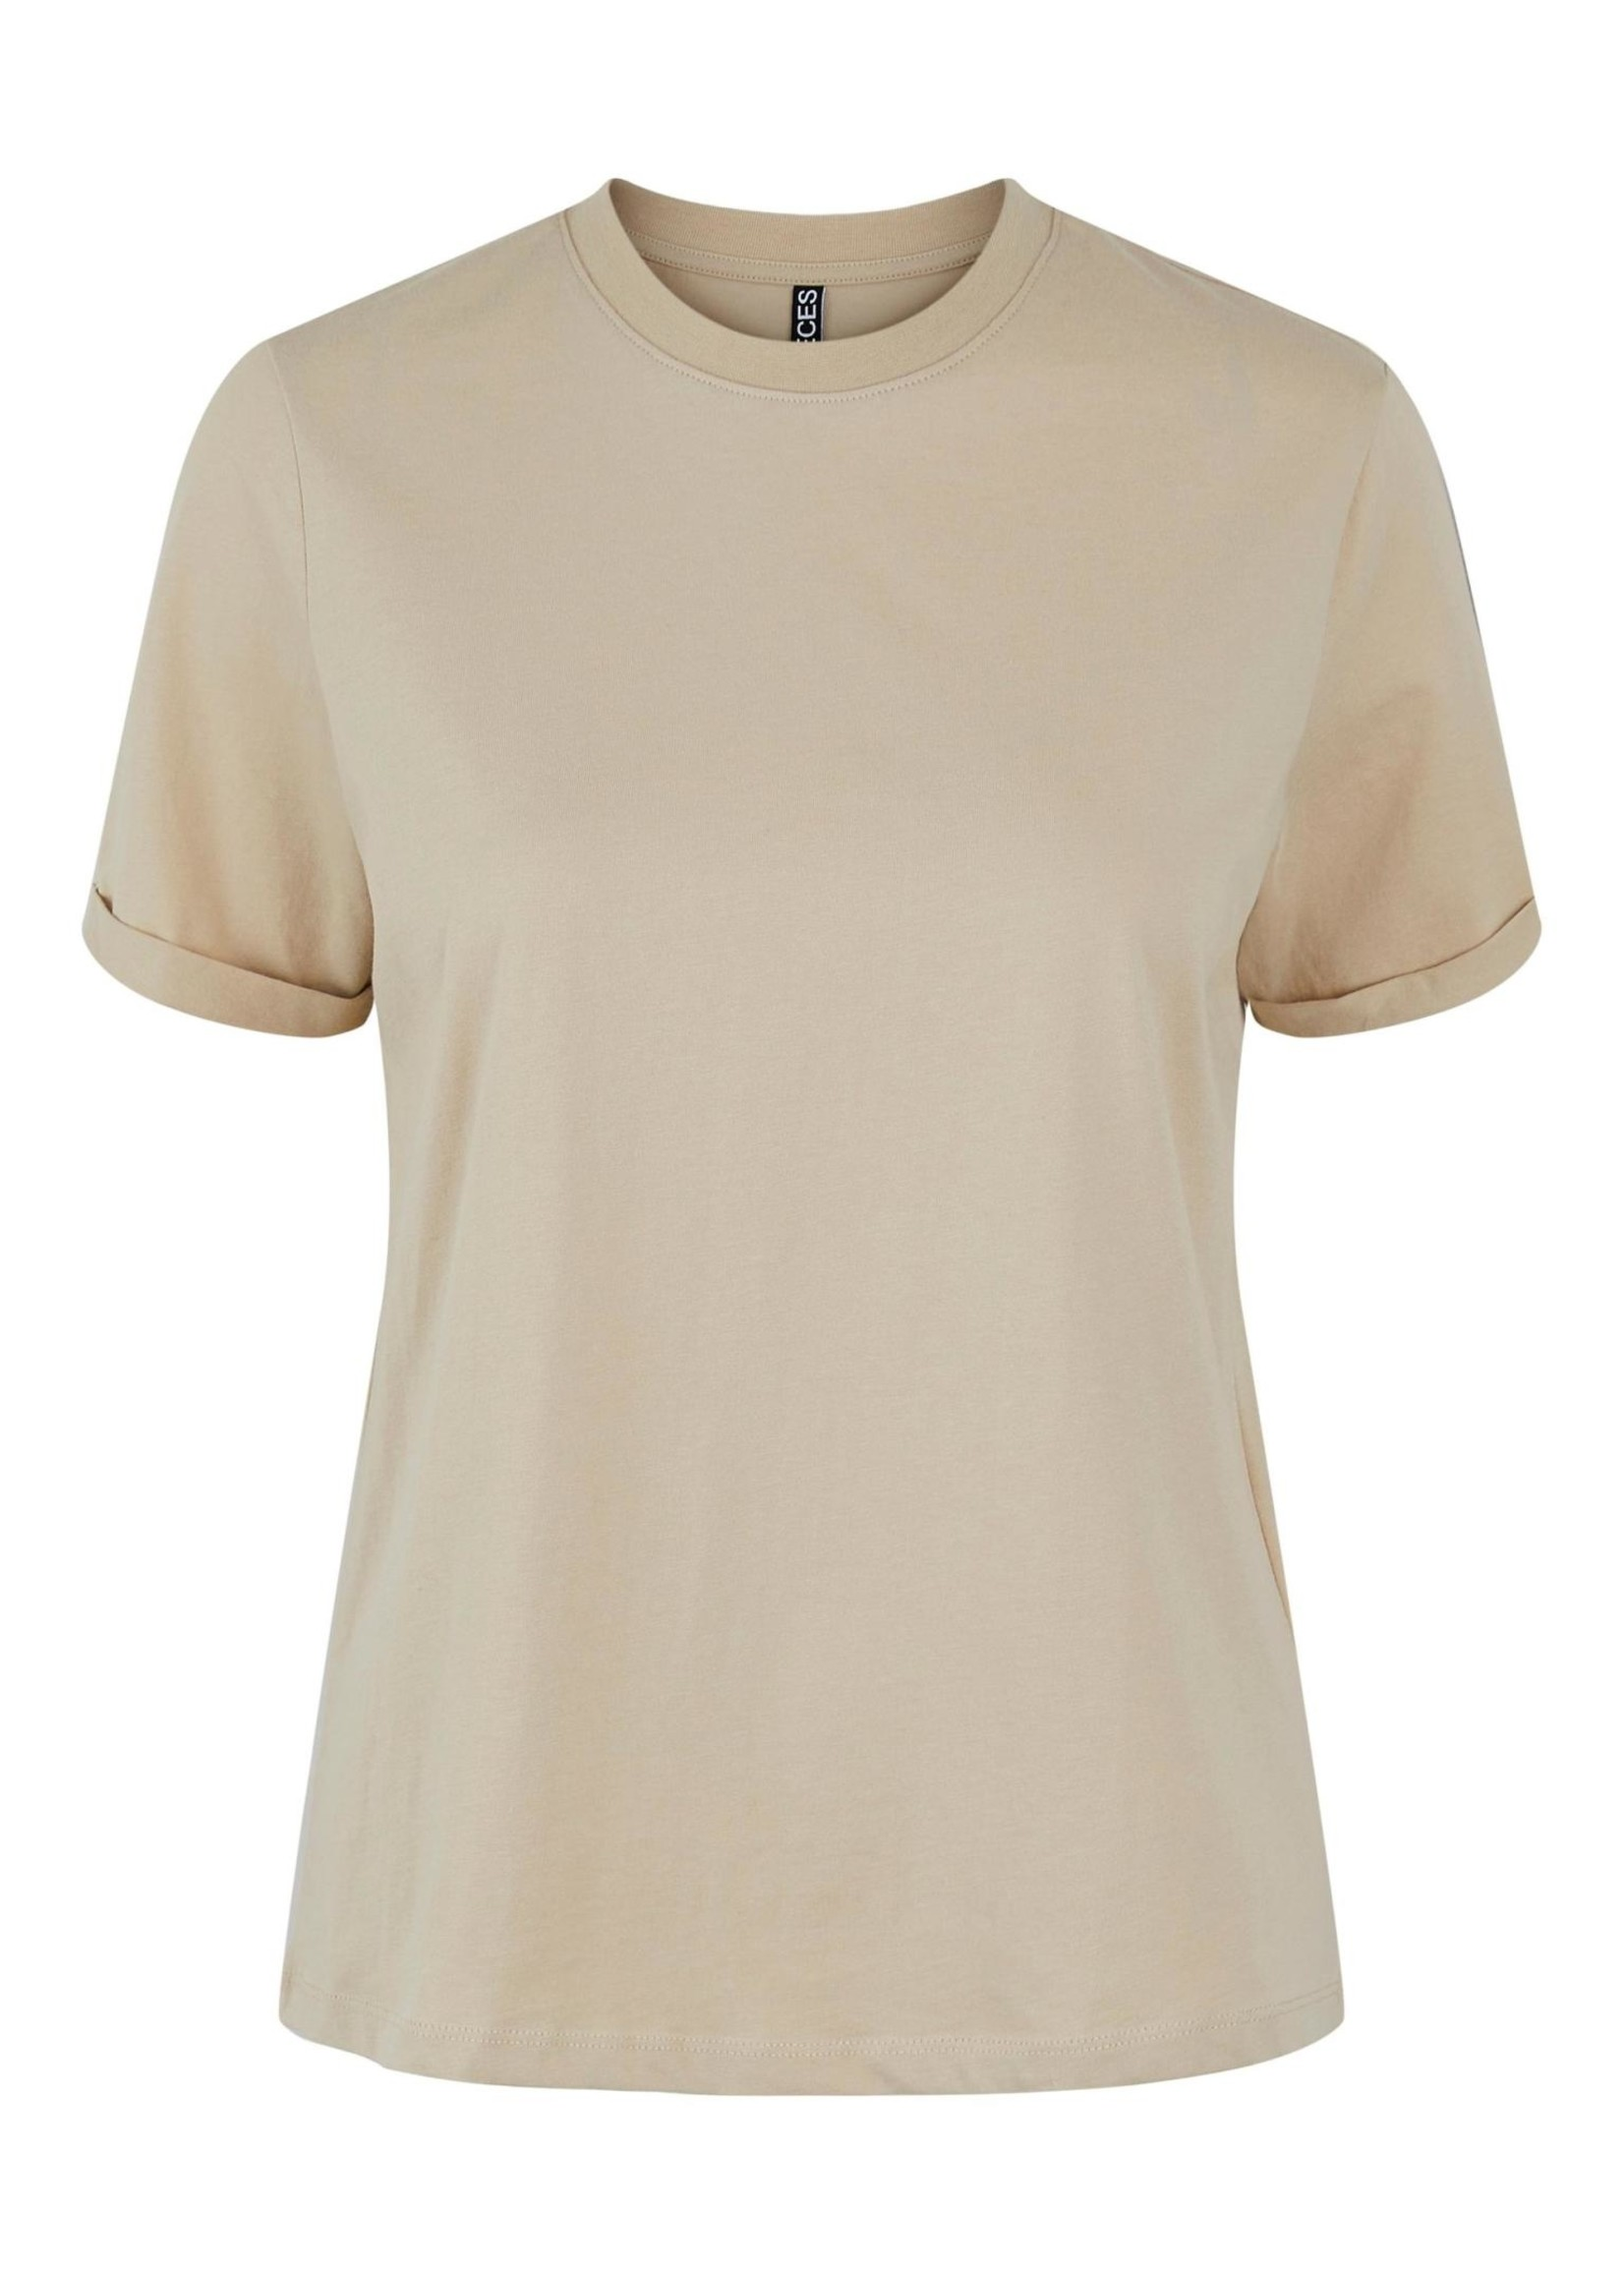 PIECES RIA SS FOLD UP TEE,white pepper